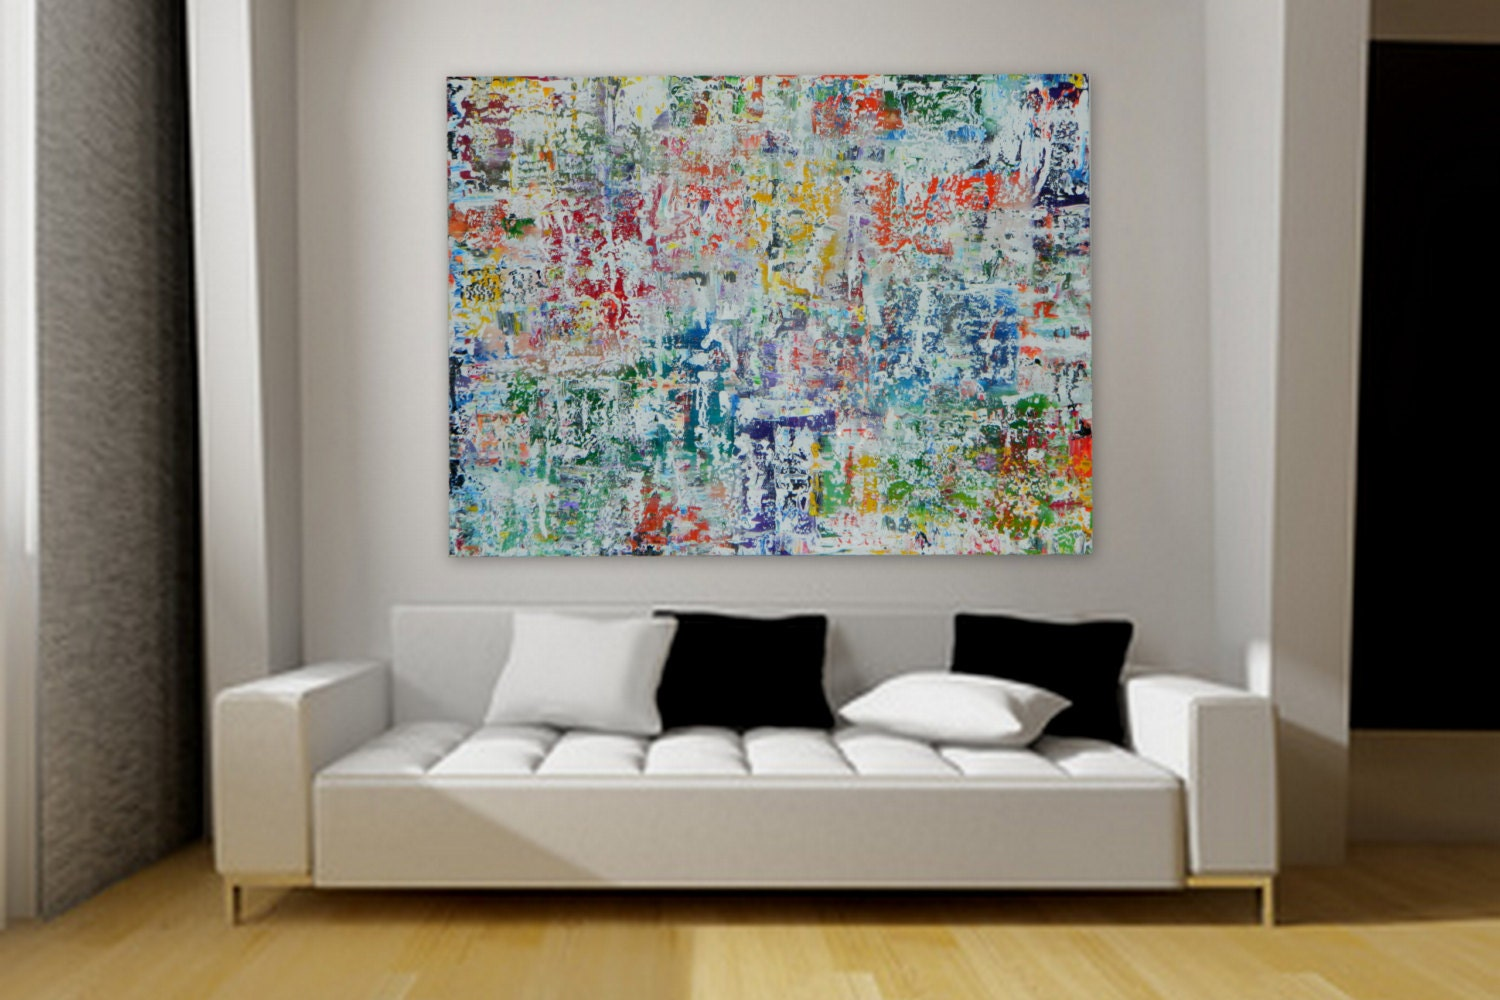 Large Original Acrylic Painting By Marcy Chapman Wall Art